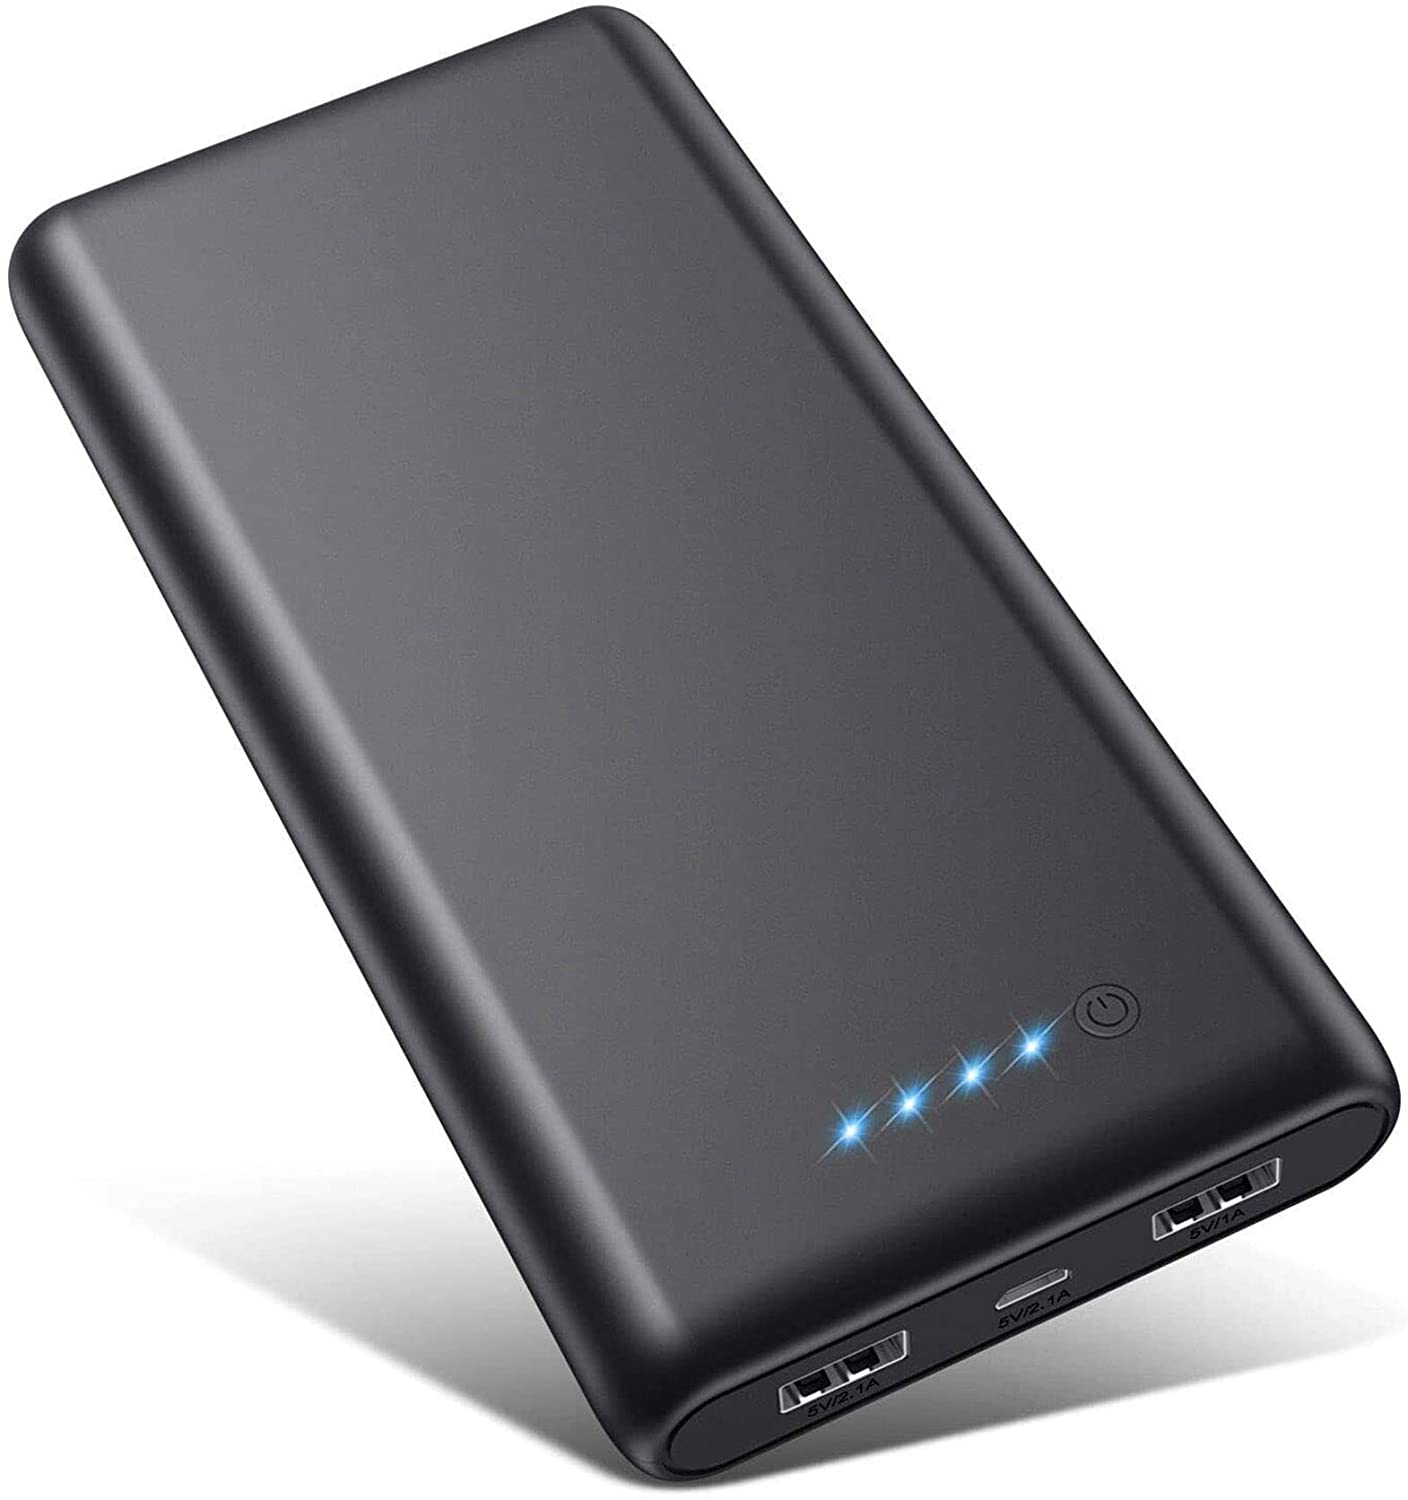 Portable Charger Power Bank Denver Mall 26800mah Max 62% OFF Safer Ultra-High Capacity